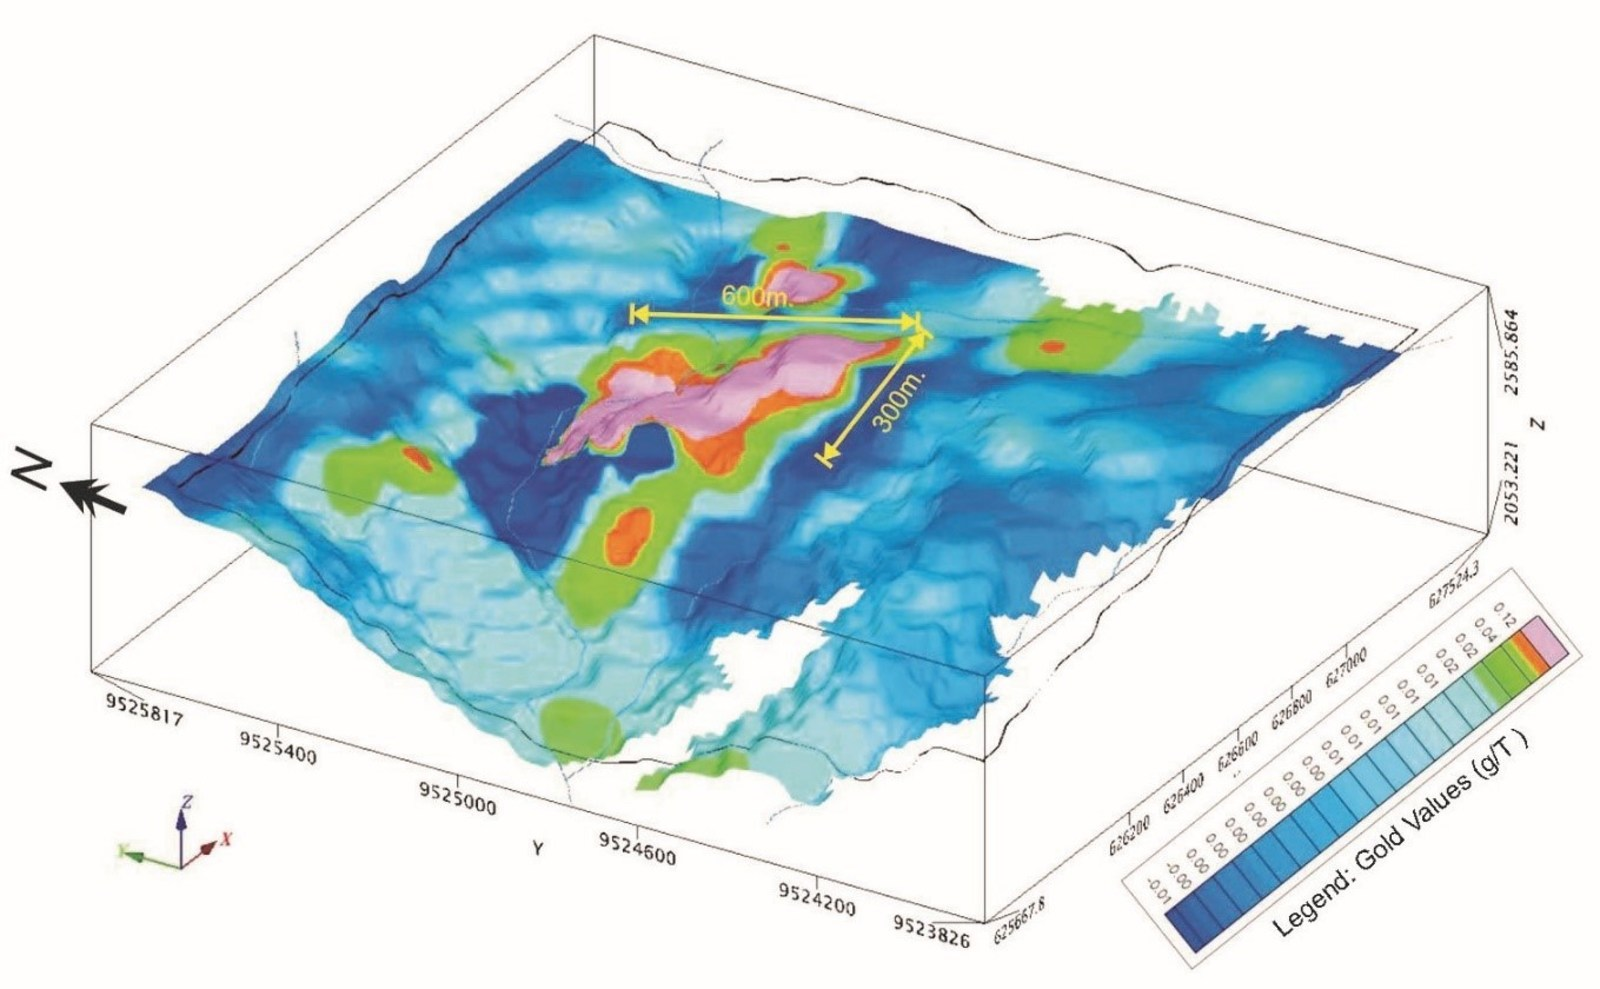 Figure 2. 3D map of gold in soils, highlighting a robust geochemical anomaly at Macara, Ecuador